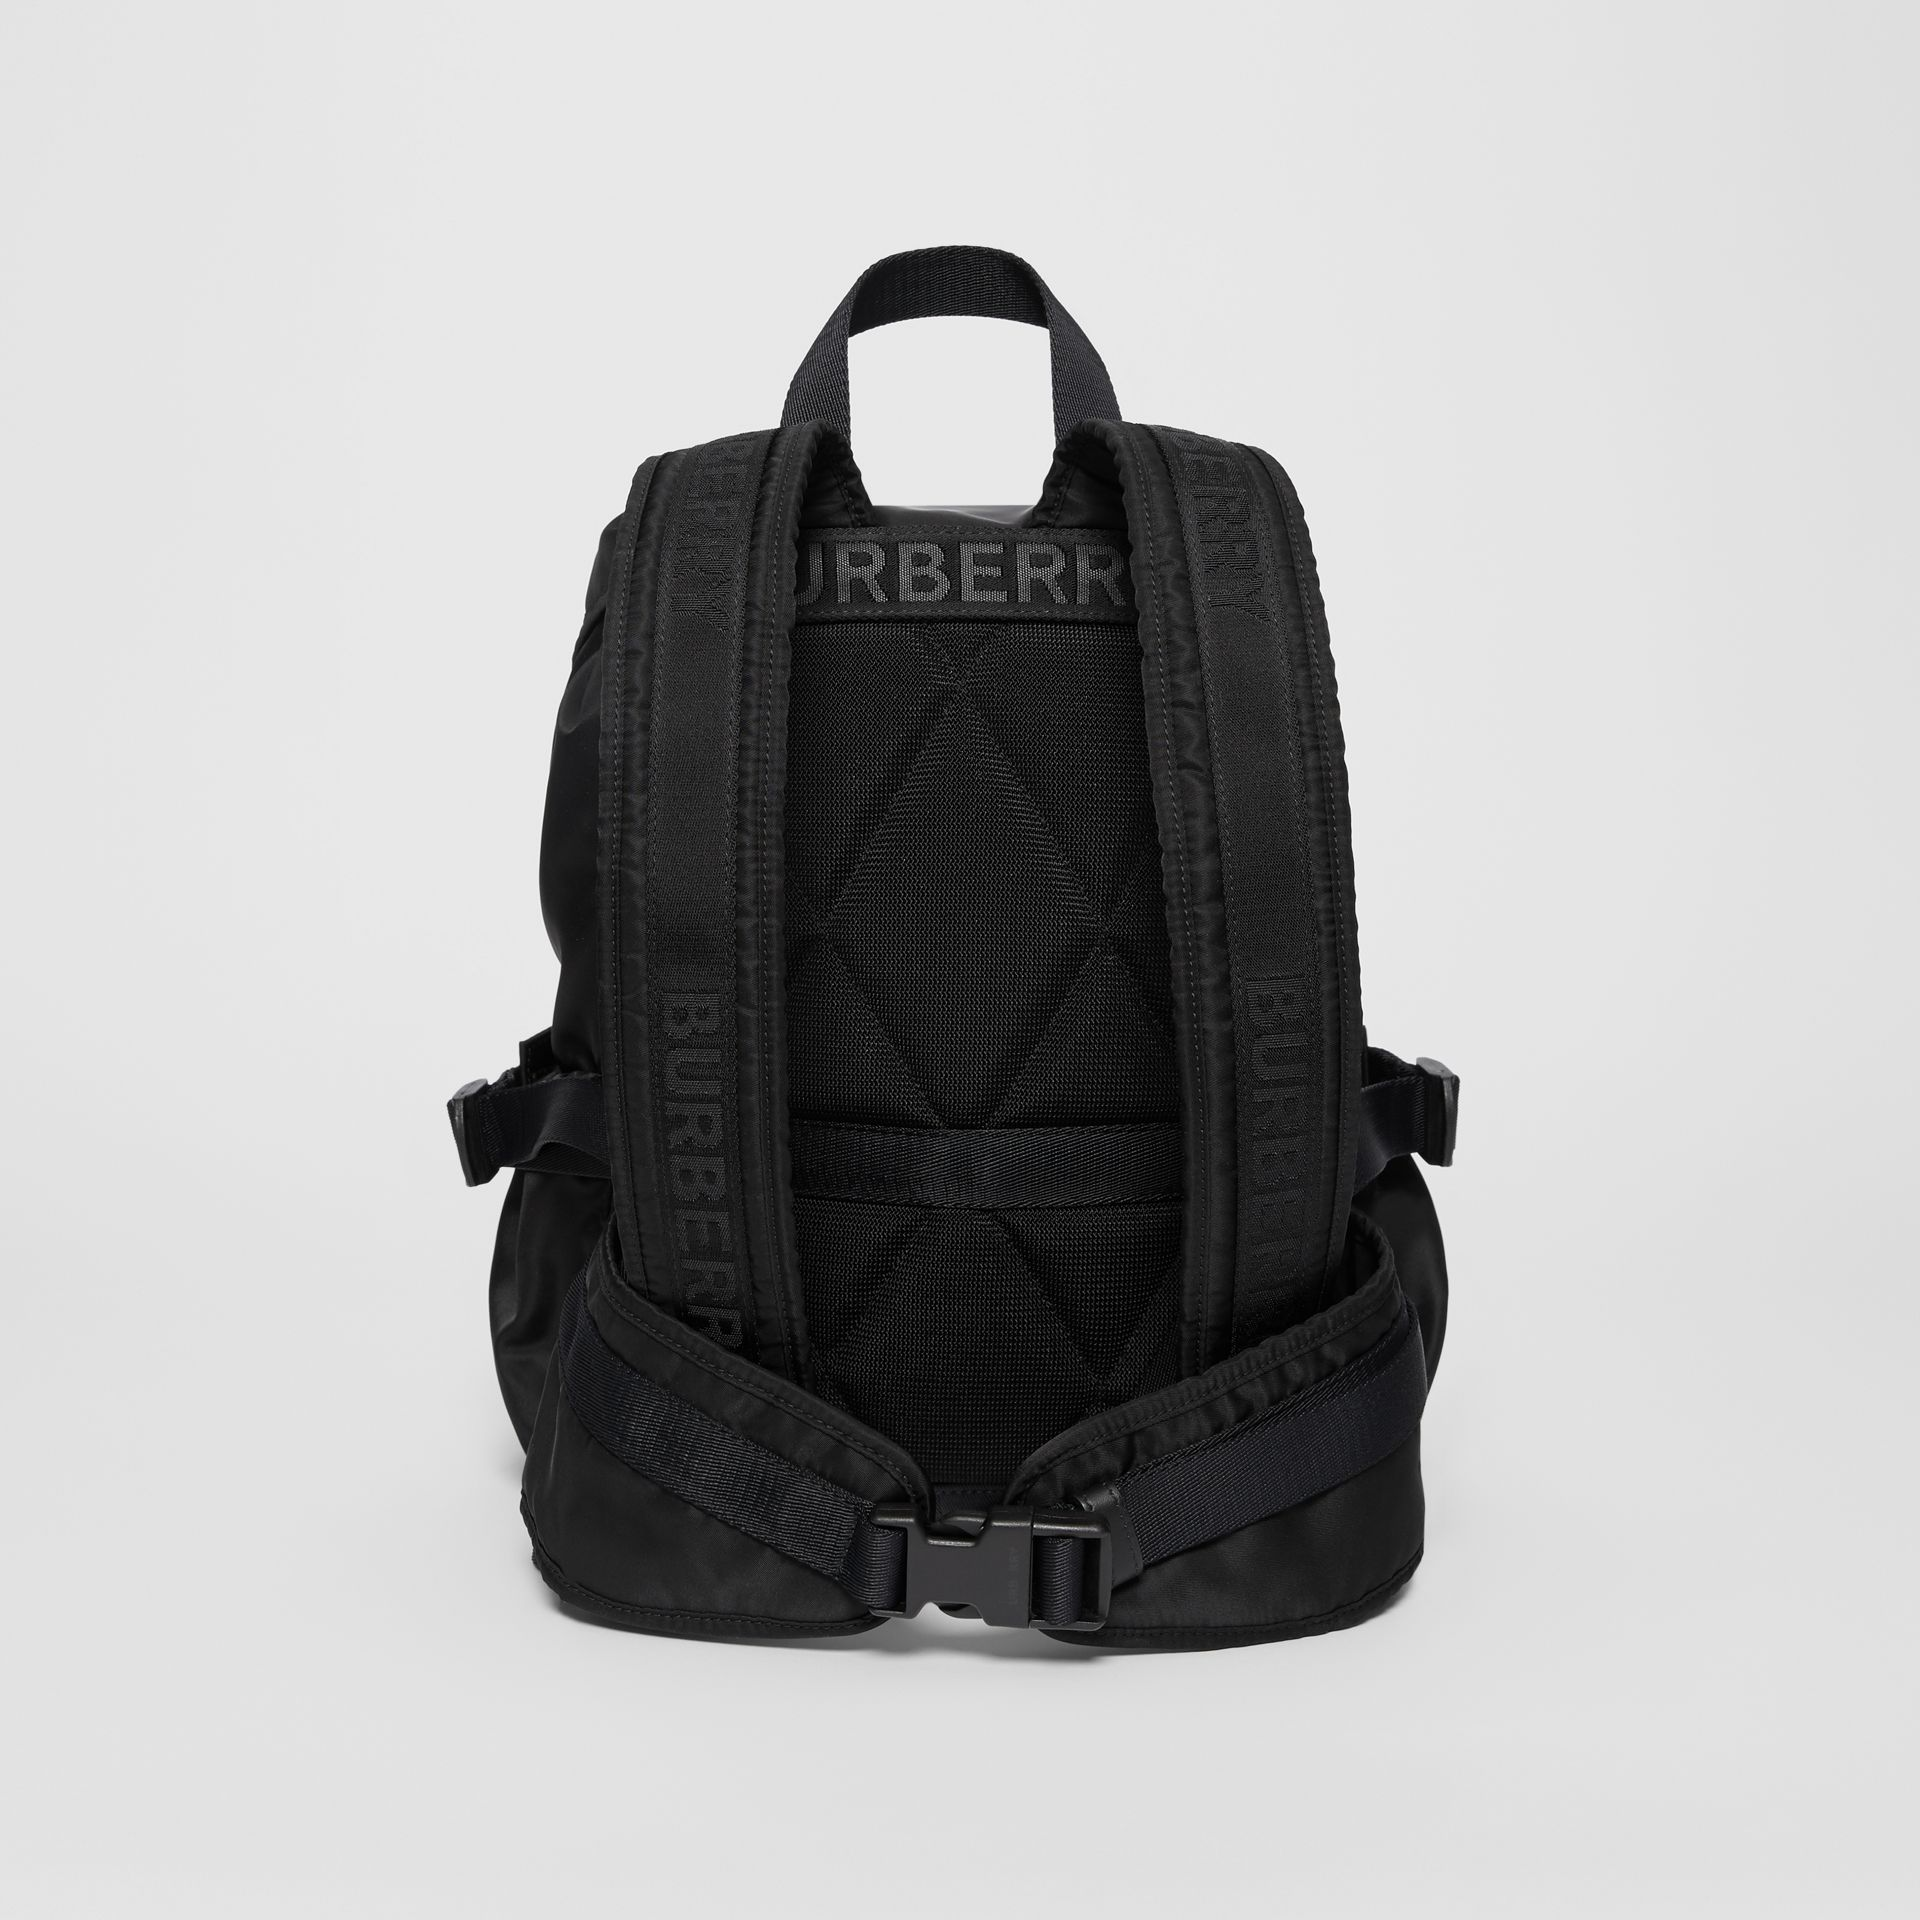 Logo Print Nylon Backpack in Black - Women | Burberry - gallery image 7